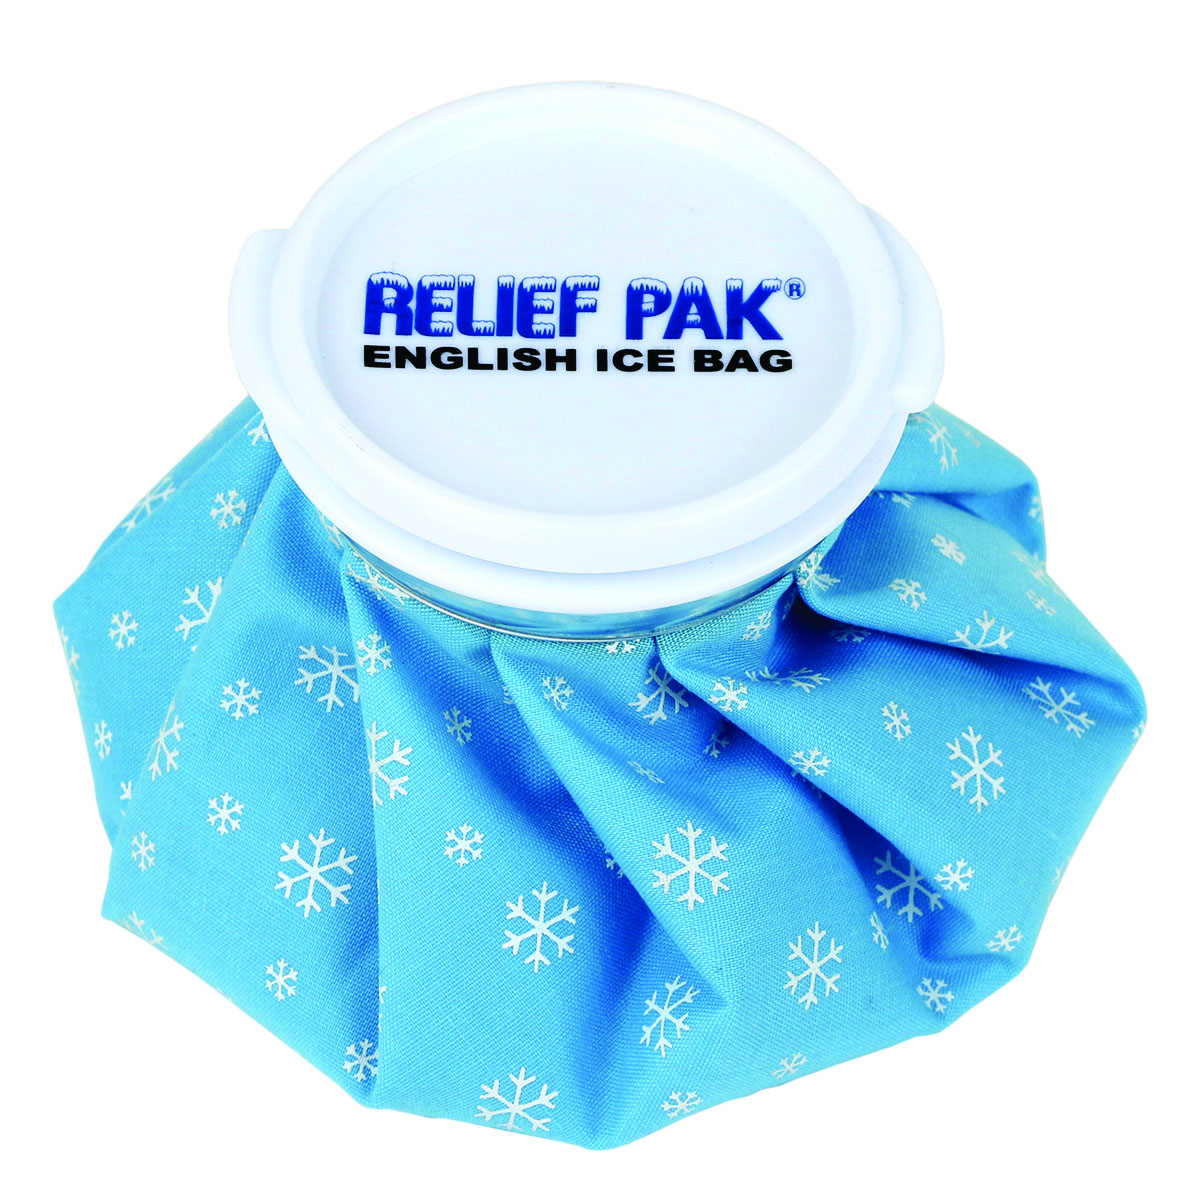 Cold Therapy Products English Ice Cap Reusable Bag